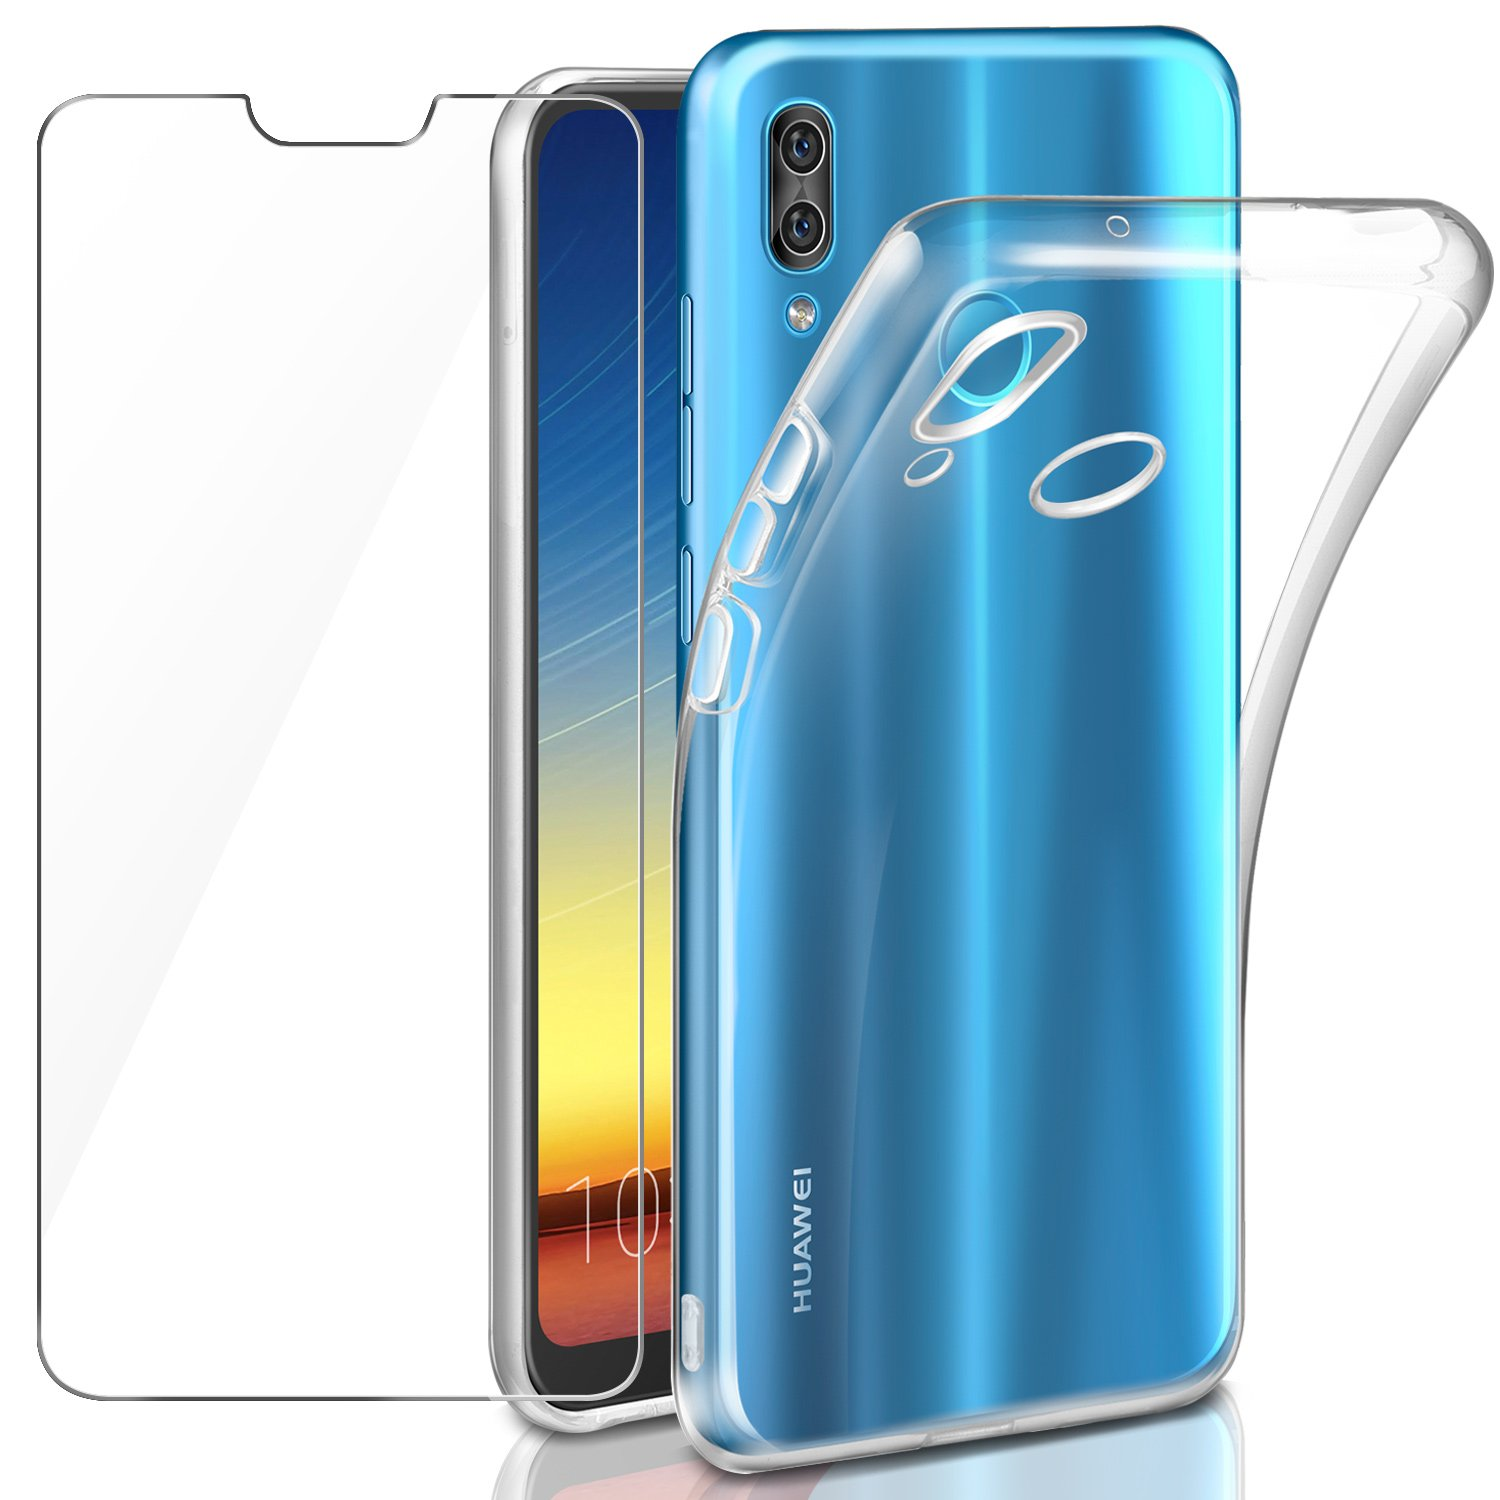 Huawei P20 Lite Protective Case + Tempered Glass Protective Film, Leathlux Soft Transparent Silicone Protective TPU Gel Slim Cover for Huawei P20 Lite / Huawei P11 Lite 5.84 ""